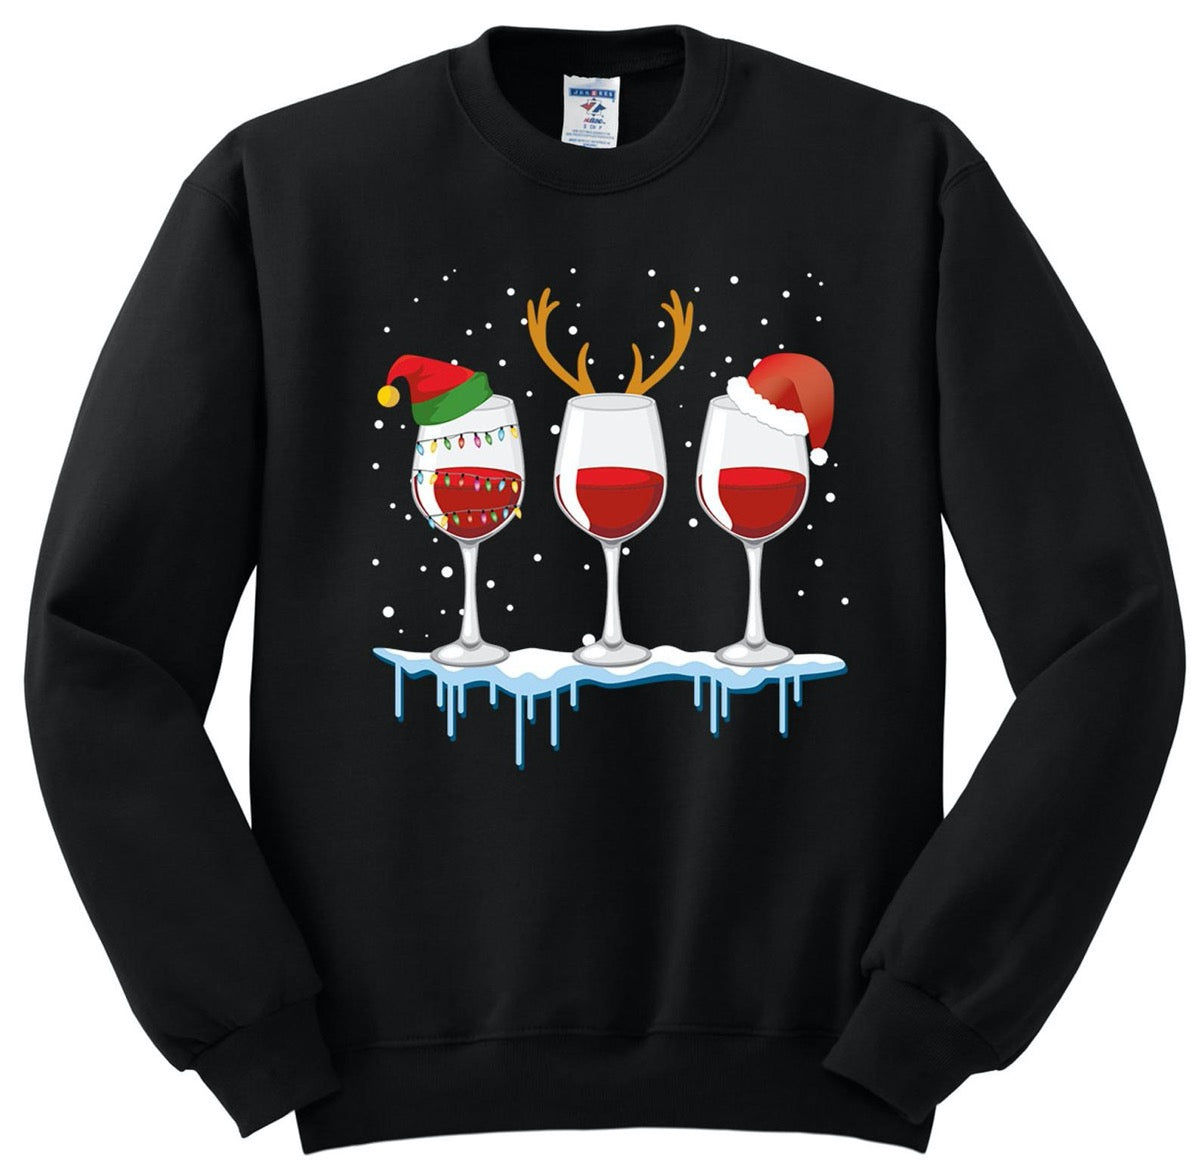 Merry Christmas Wine Sweatshirt 2